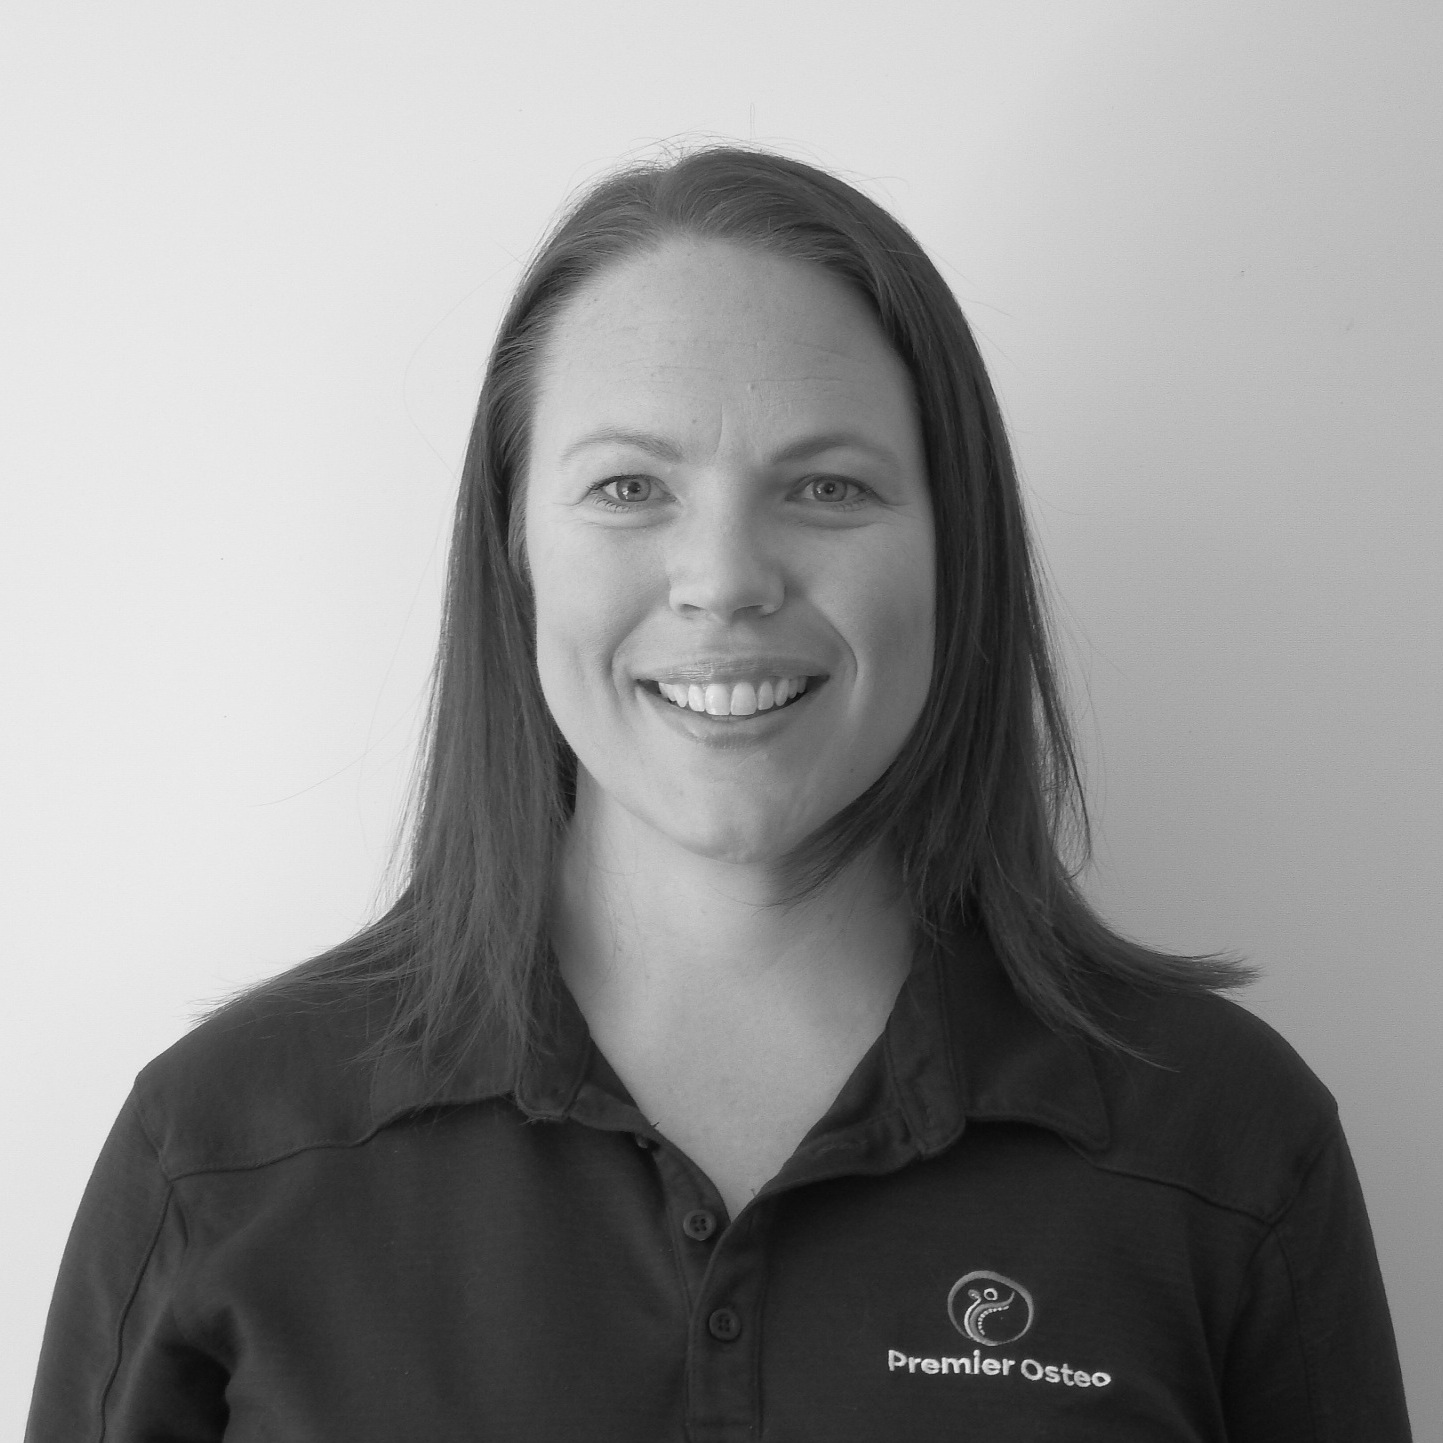 Tonia Peachey - Owner, Osteopath & Functional Medicine Practitioner